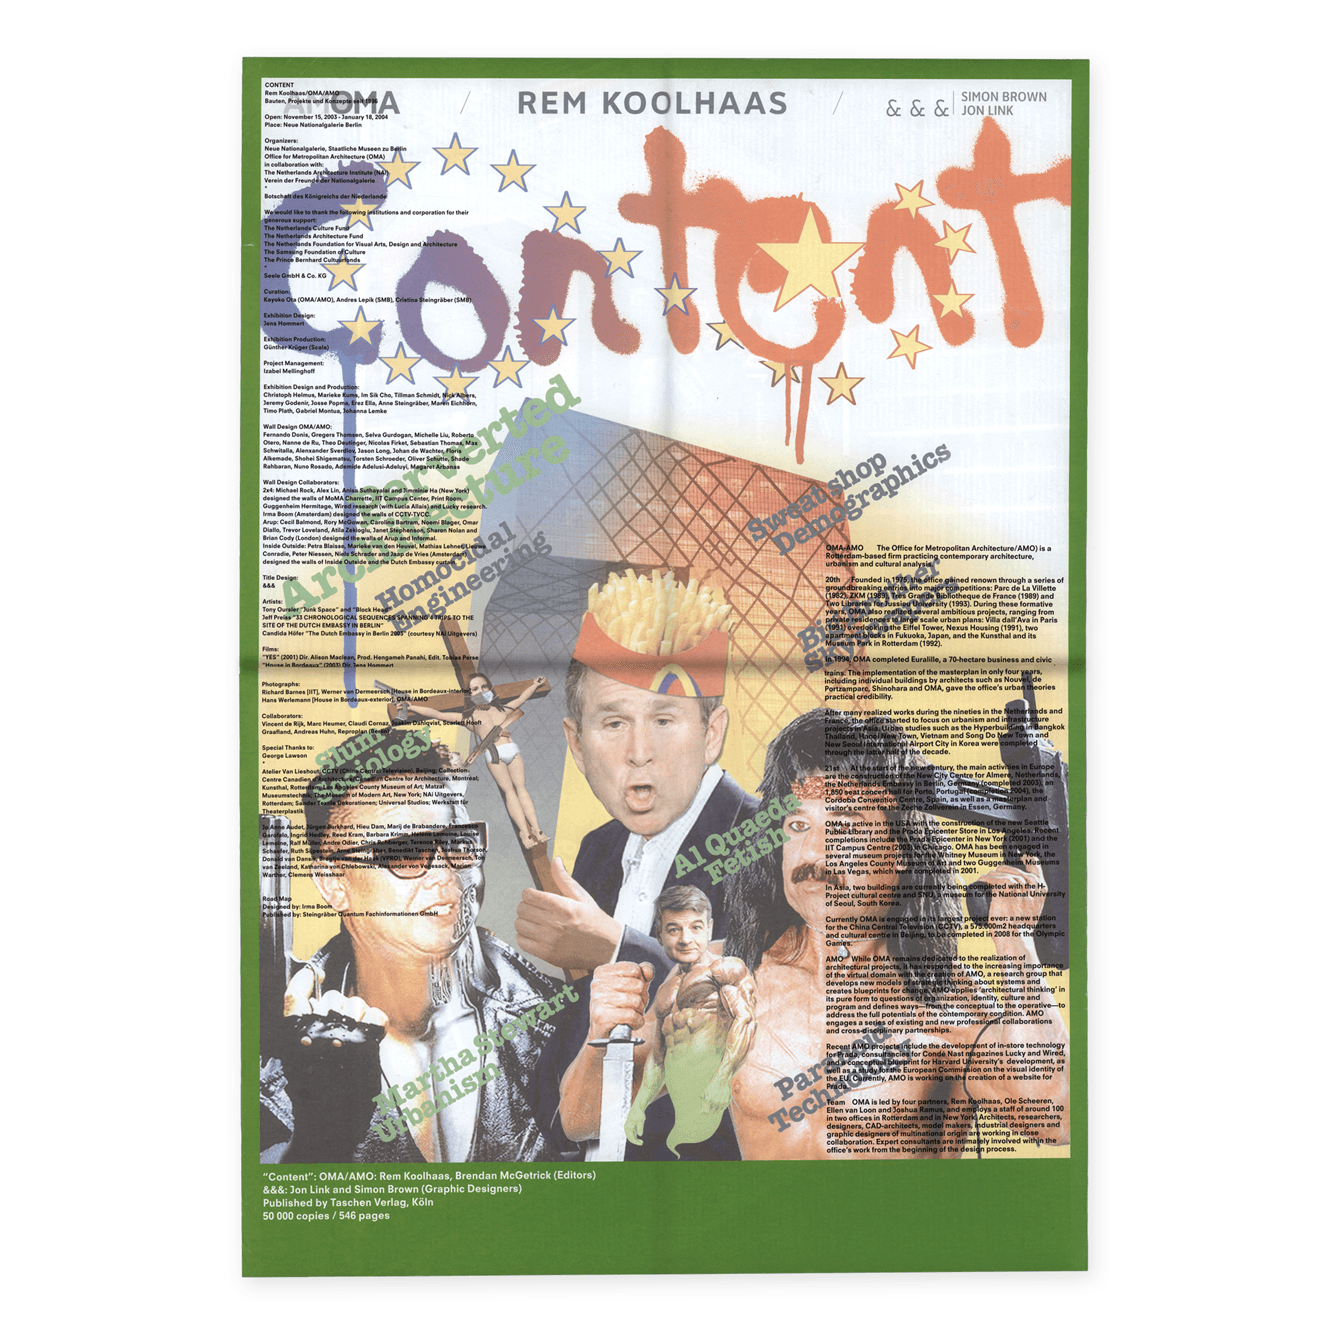 Poster For The Rem Koolhaas's Content Exhibition Design By &&& Creative